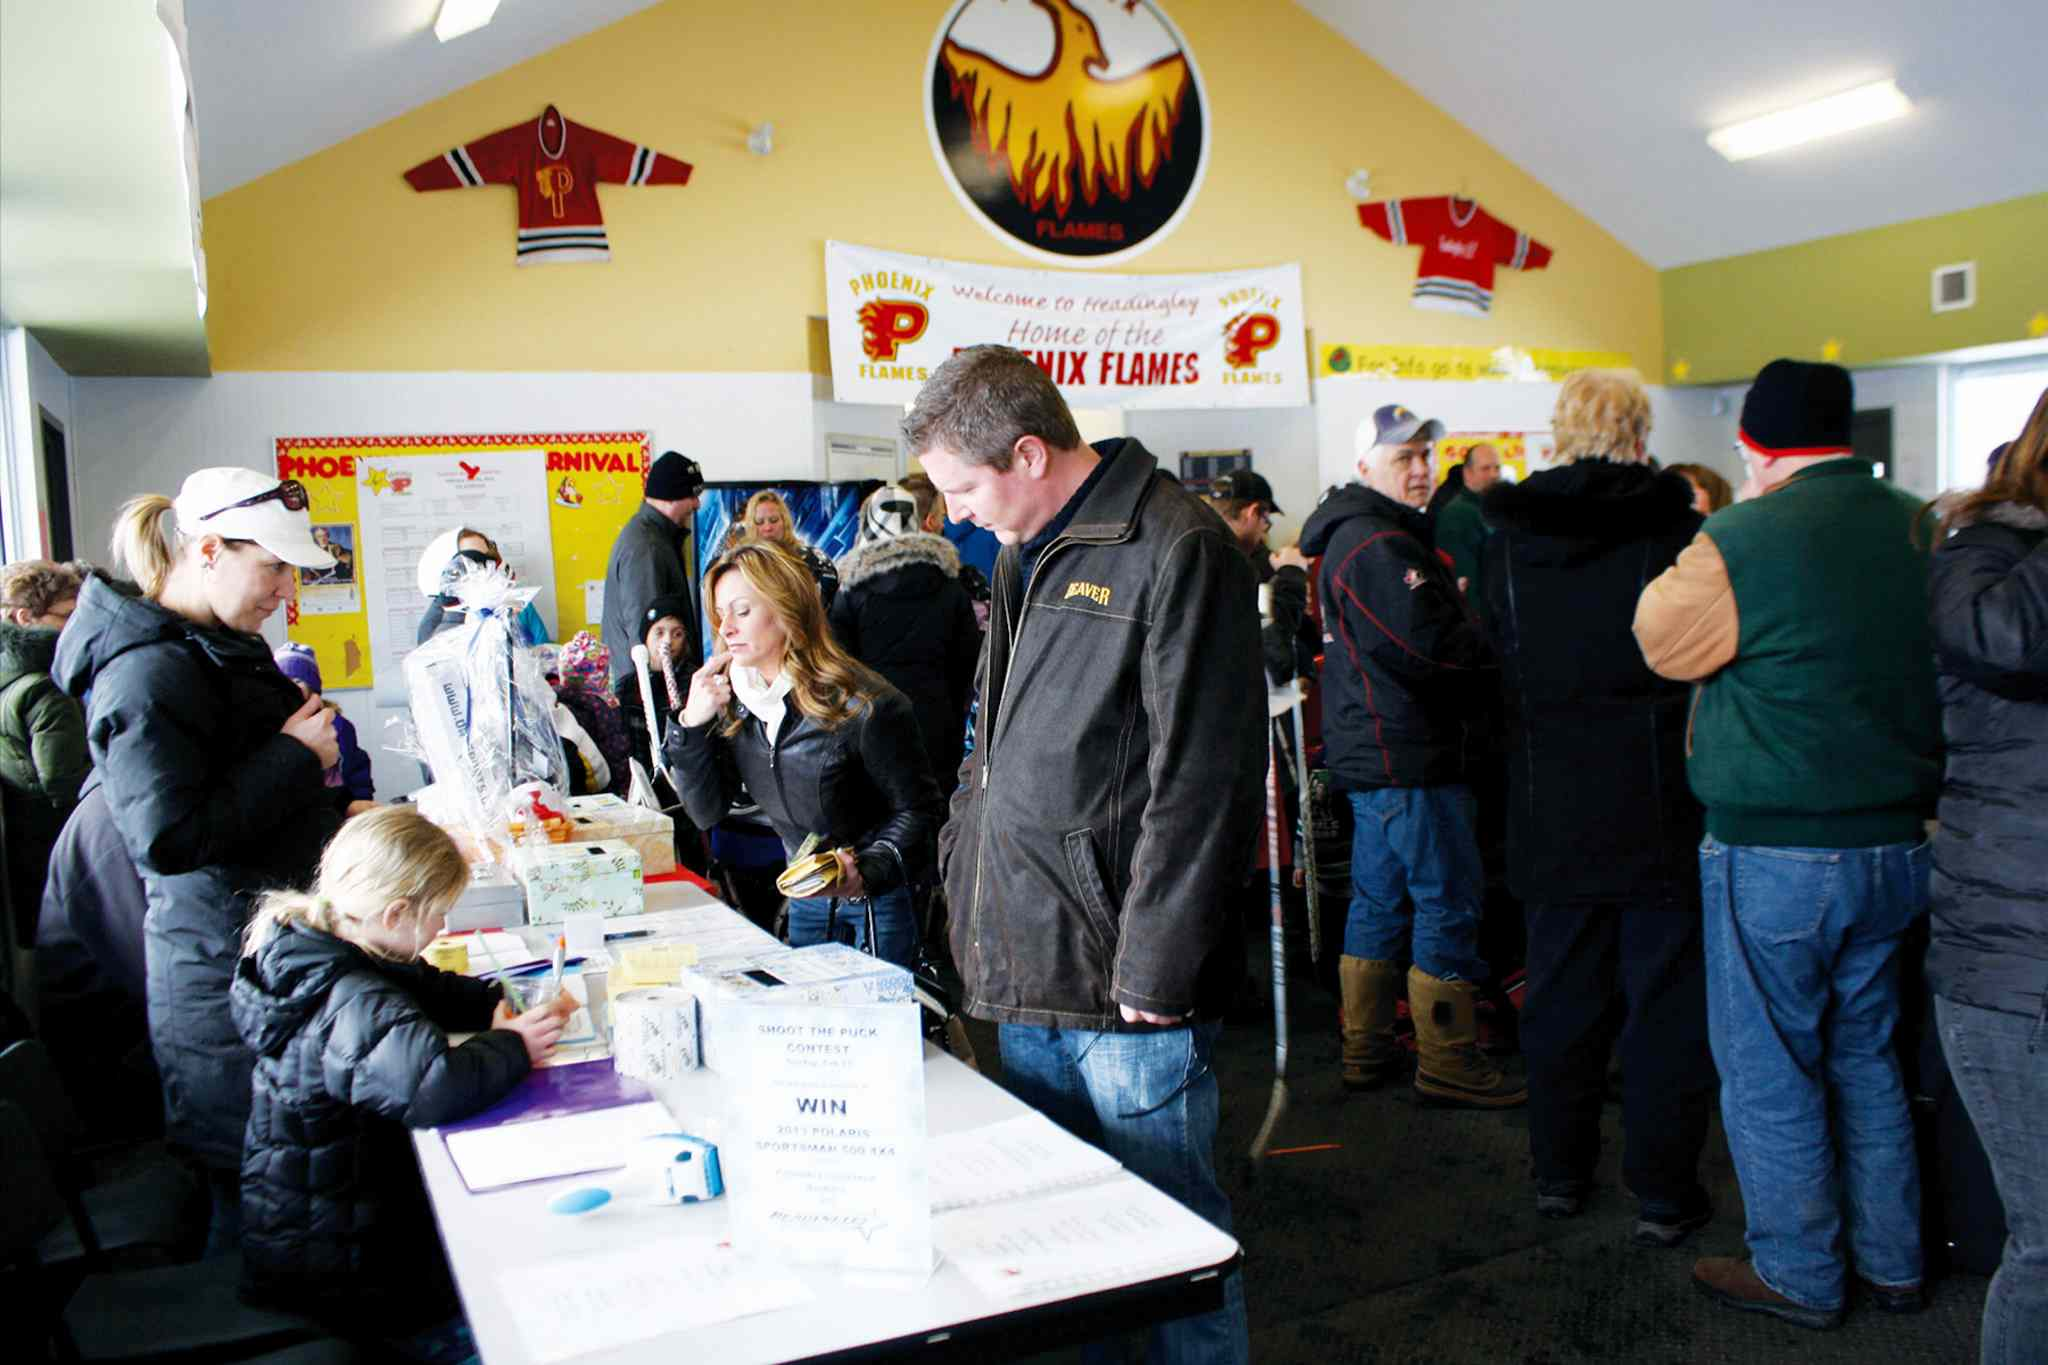 The silent auction at the 2013 Phoenix Winter Carnival drew lots of interest. This year's prizes have been donated by local businesses to support programming at the Phoenix Community Centre.